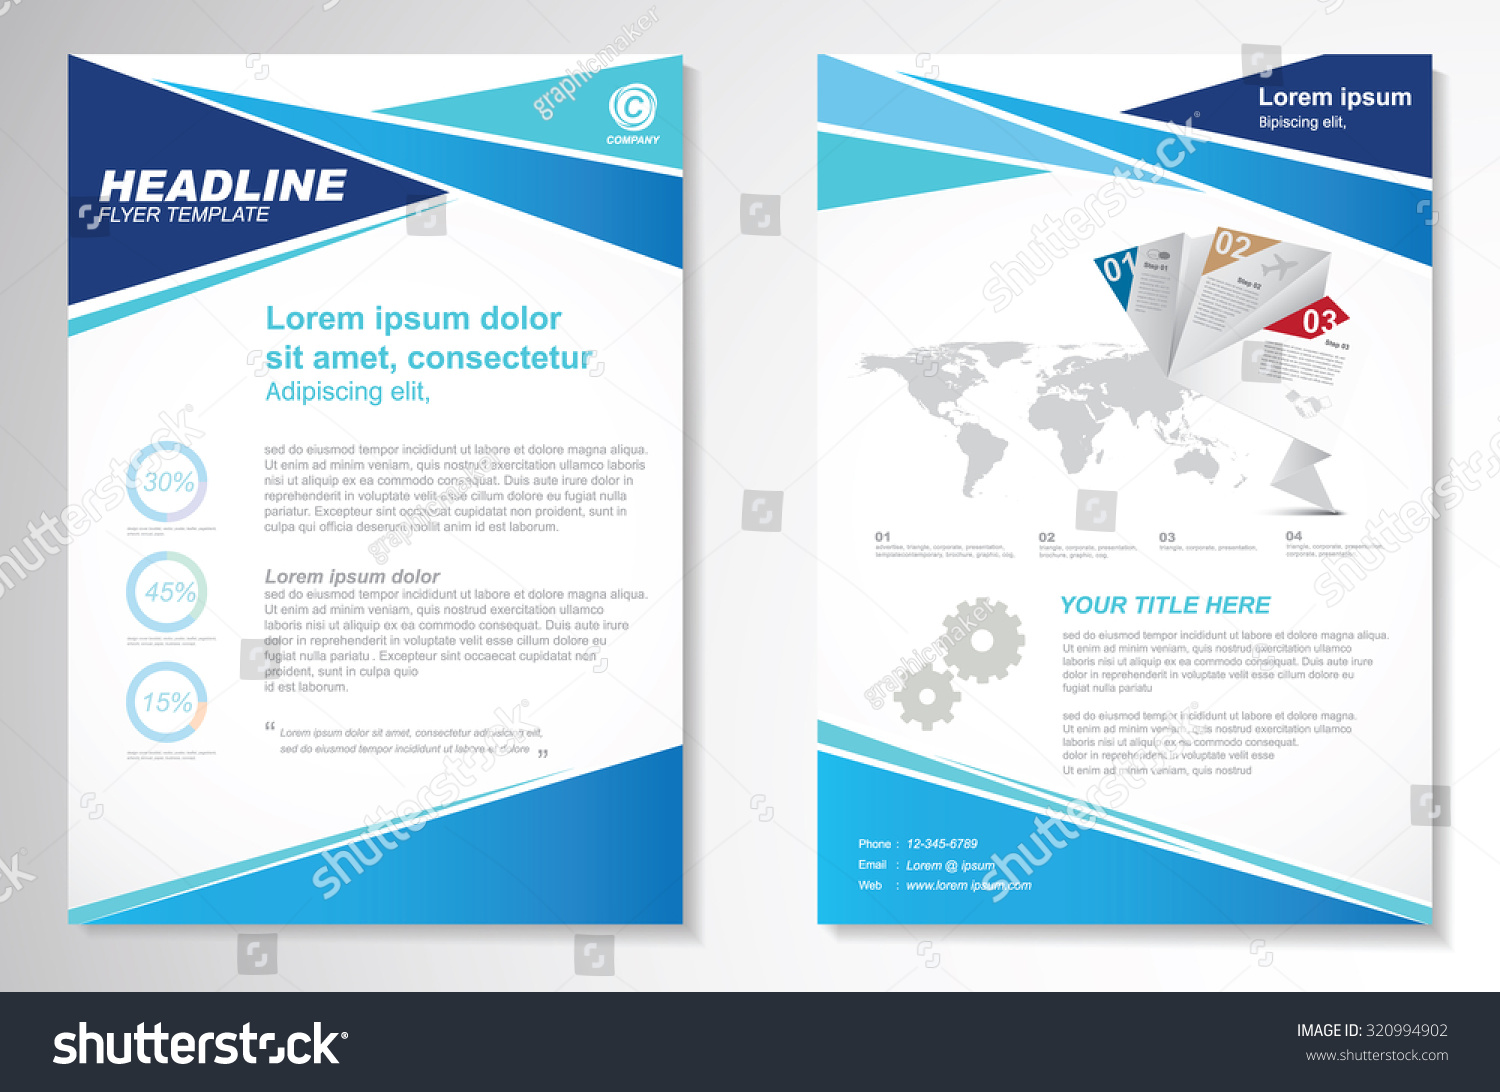 a4 brochure template - vector brochure flyer design layout template stock vector